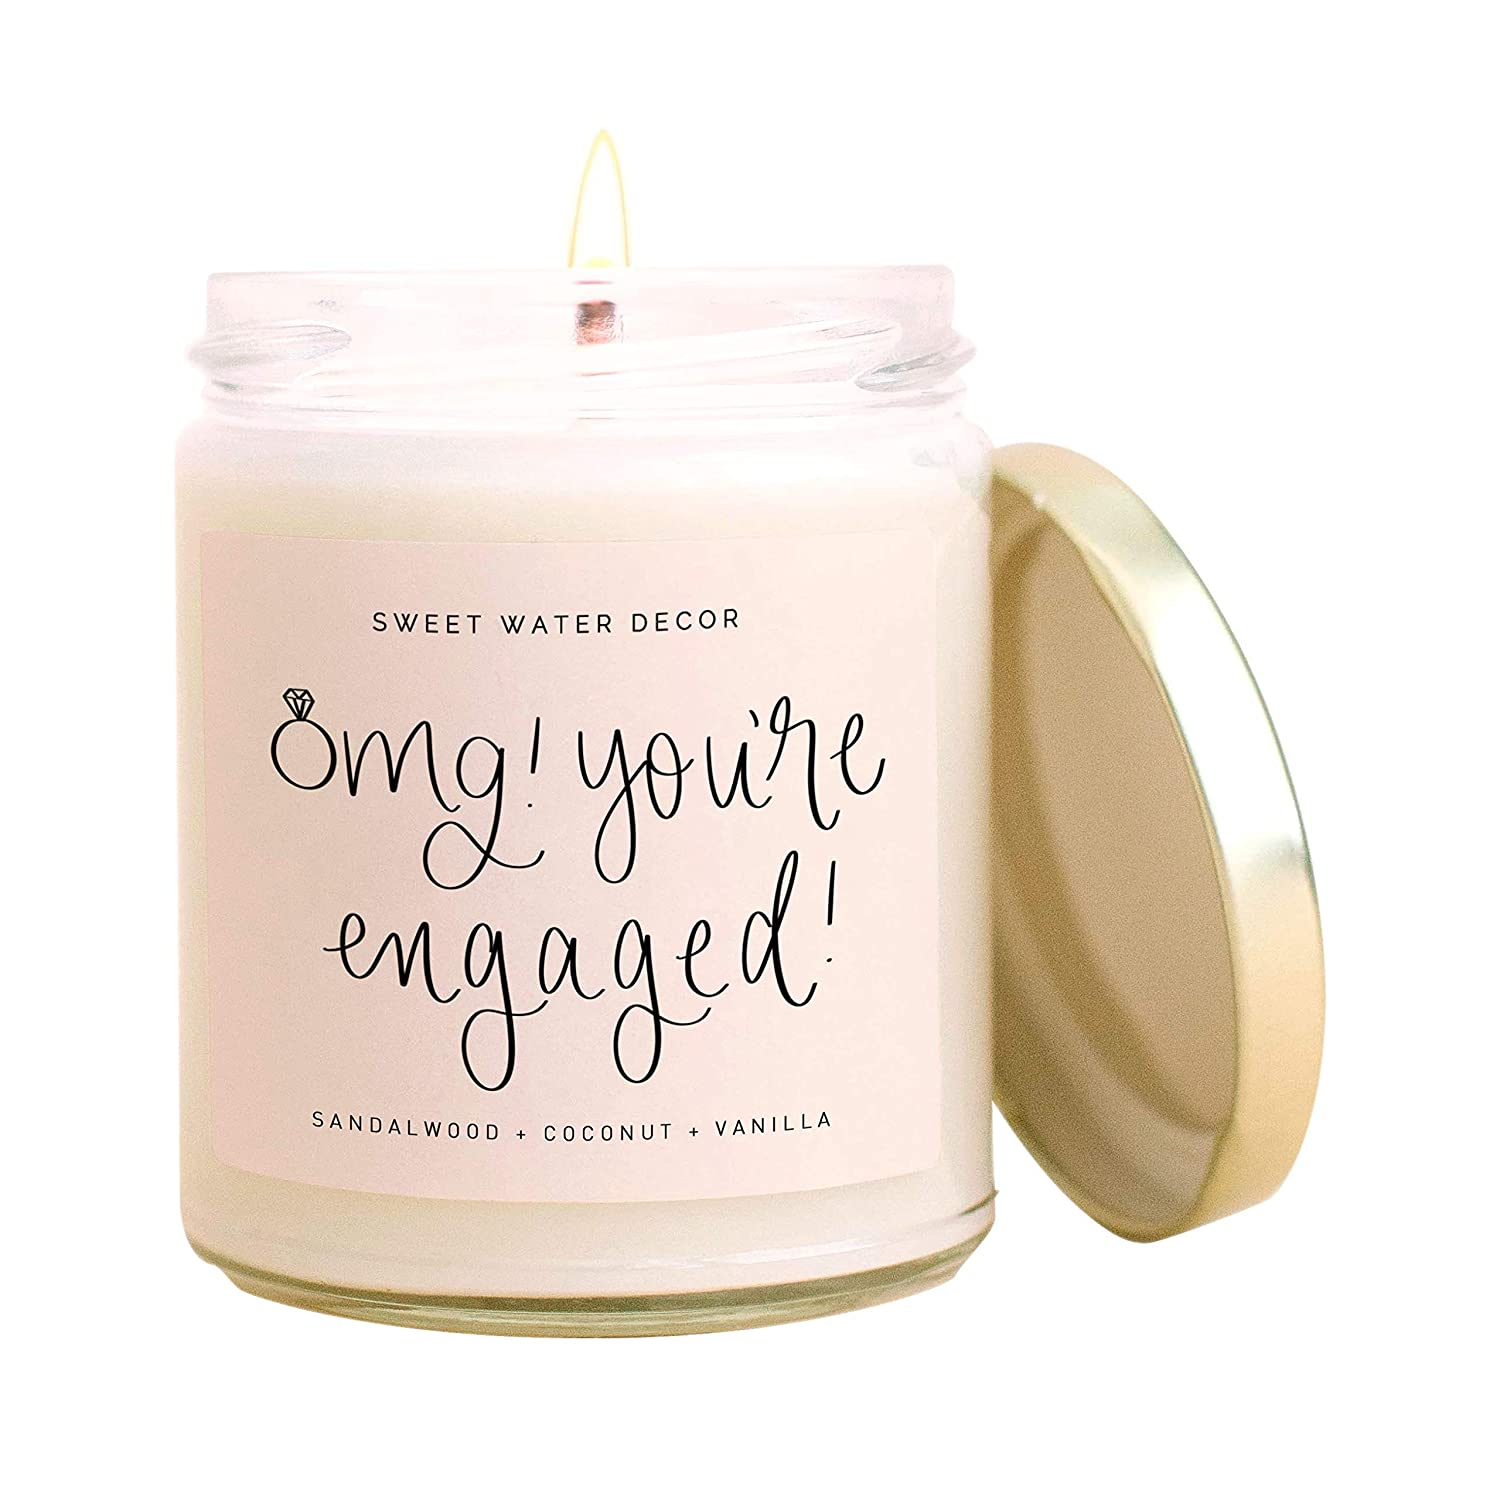 Sweet Water Decor, OMG, You're Engaged! | Coconut, Mahogany, Vanilla, Sandalwood, Musk Scented Soy Wax Candle for Home | Engagement Gift | 9oz Clear Glass Jar, 40 Hour Burn Time, Made in the USA